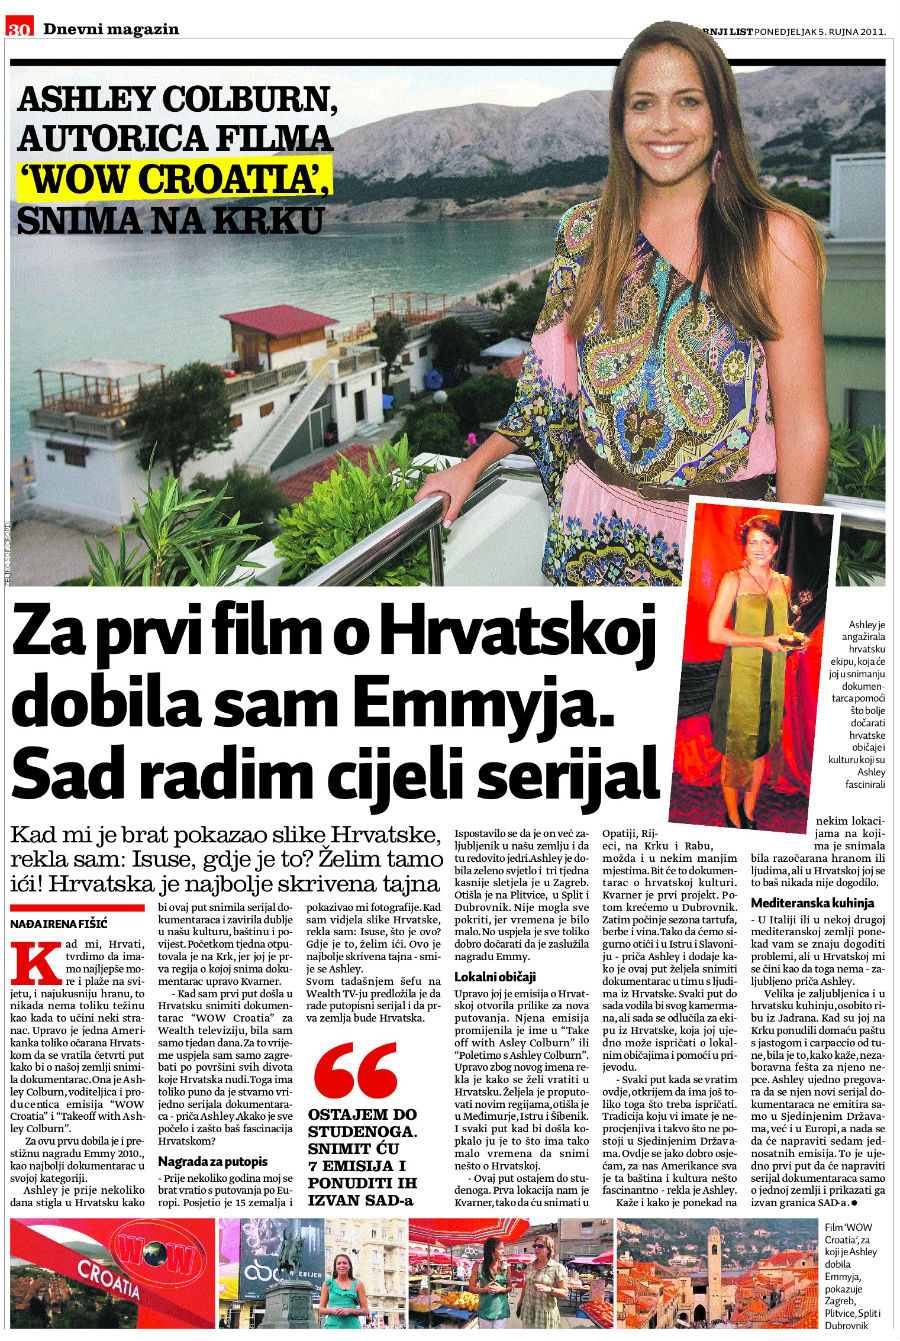 Ashley in Dnevni Magazin